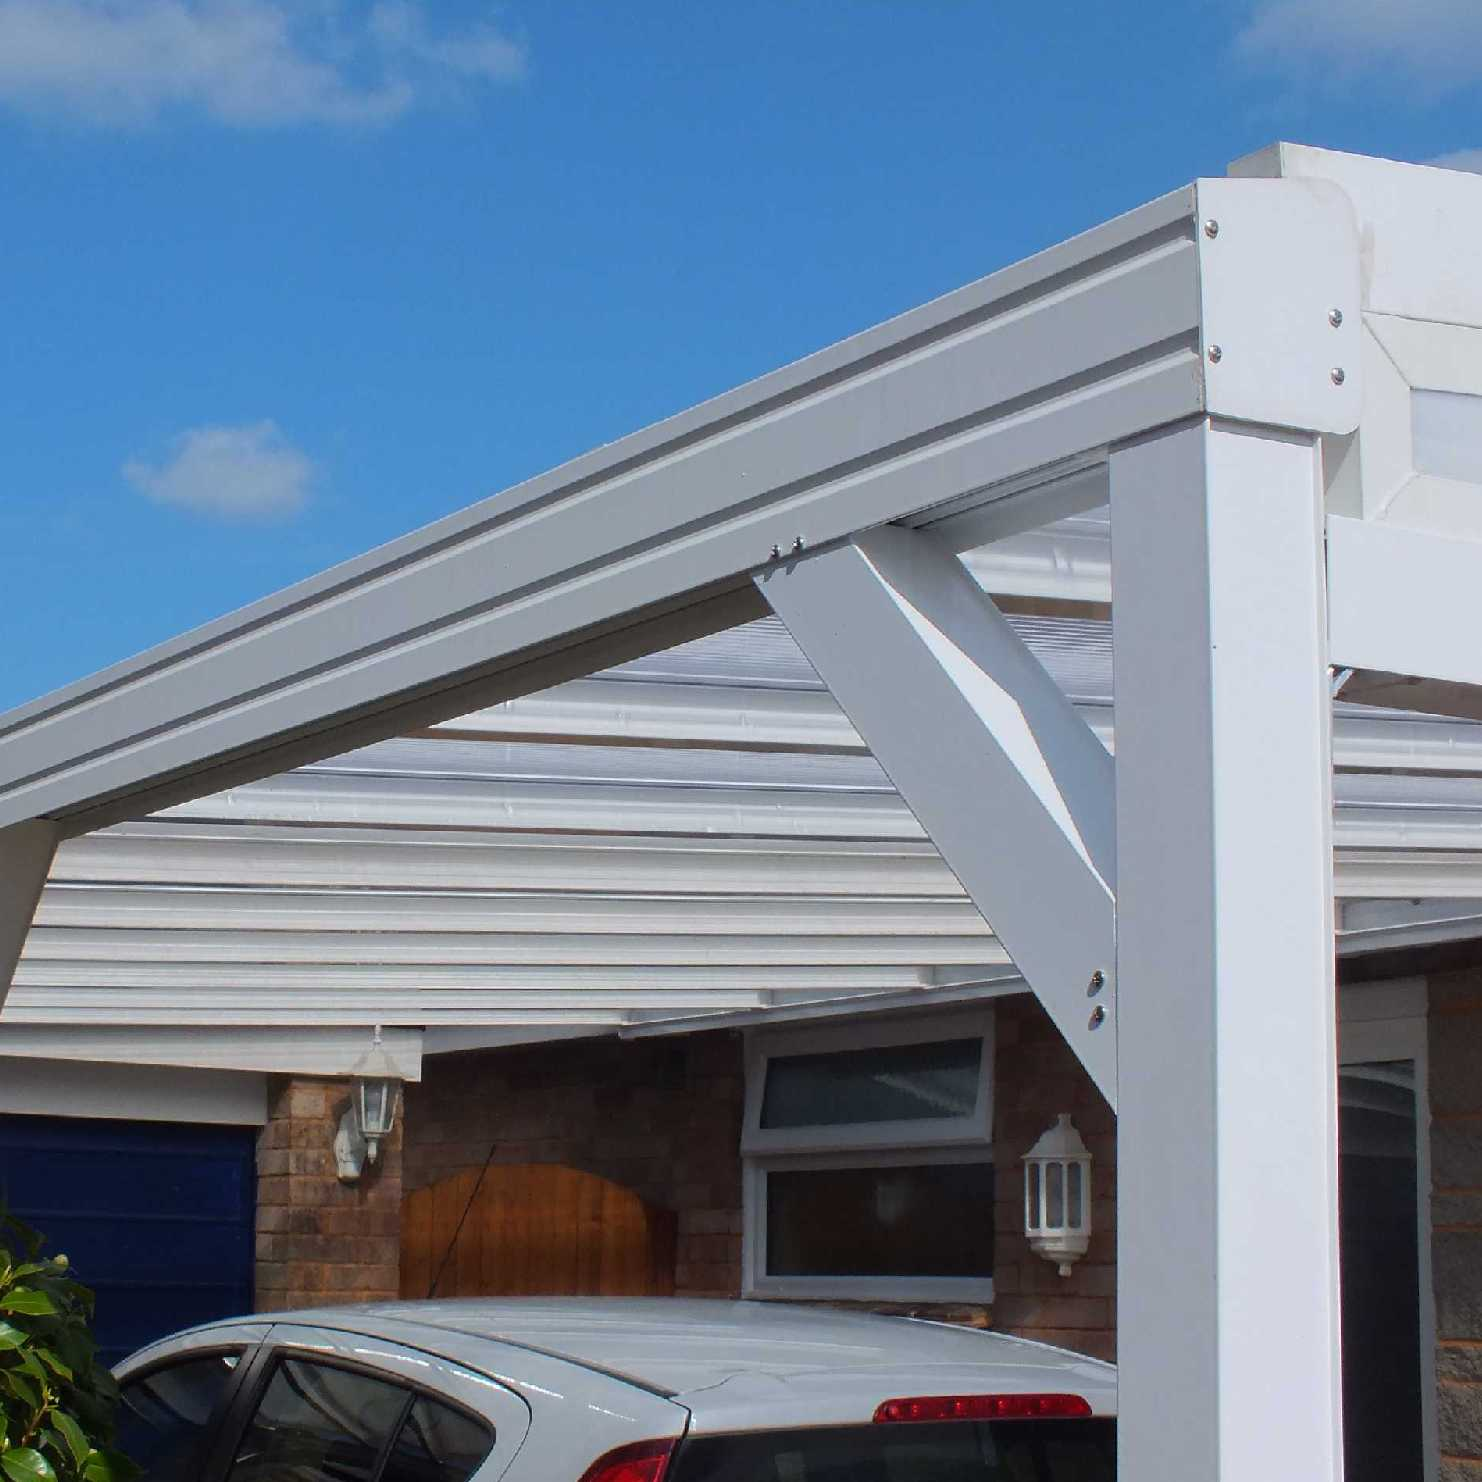 Buy Omega Smart White Lean-To Canopy with 16mm Polycarbonate Glazing - 4.9m (W) x 4.0m (P), (3) Supporting Posts online today